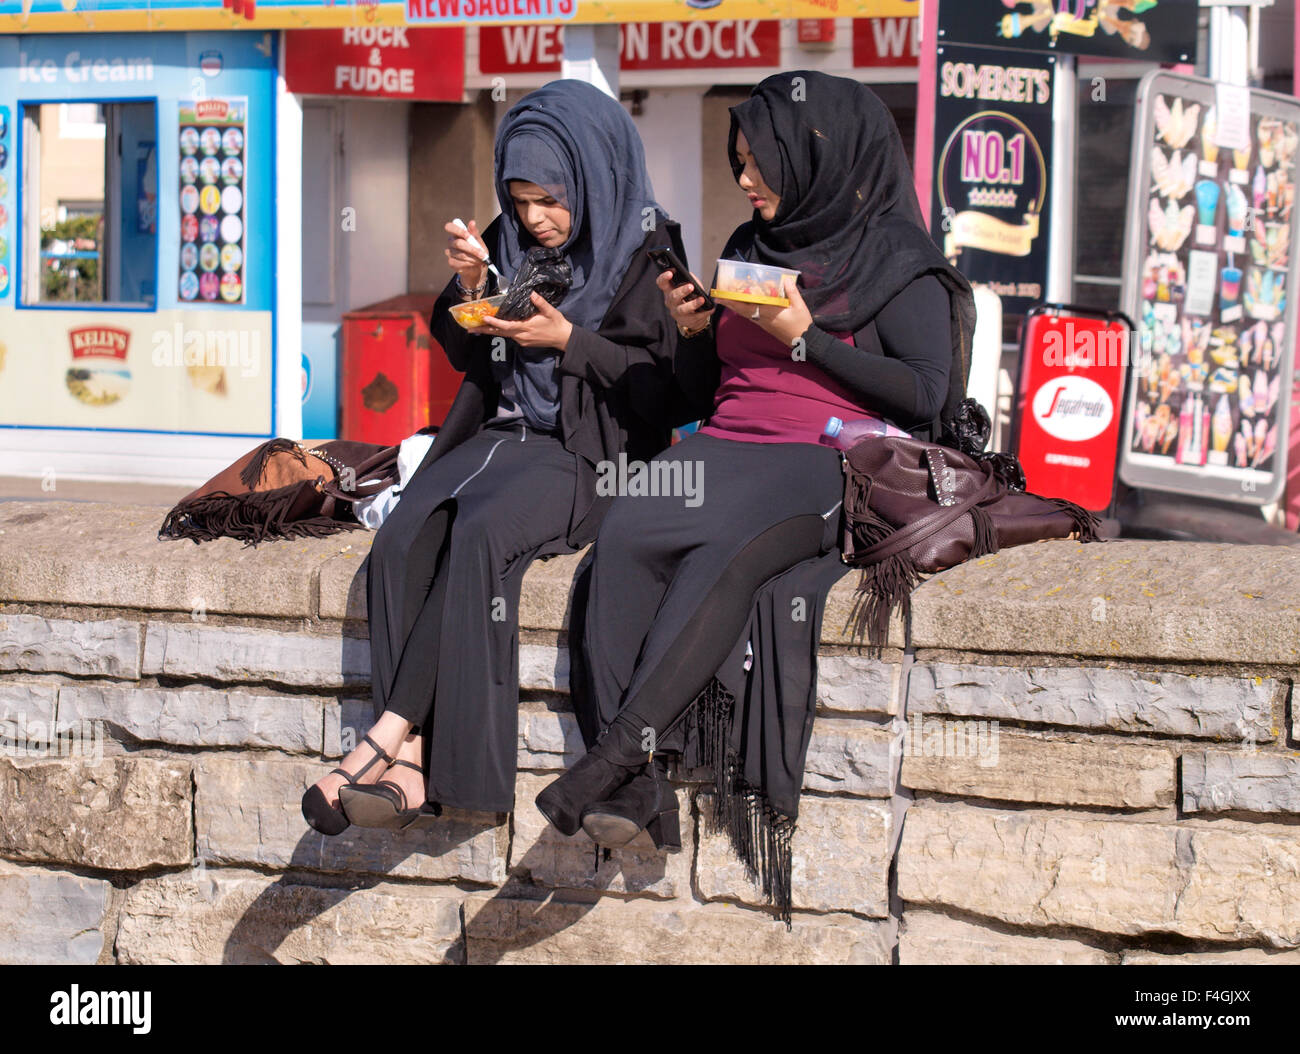 Two young Muslim women eating lunch, Weston-super-Mare, Somerset, UK - Stock Image